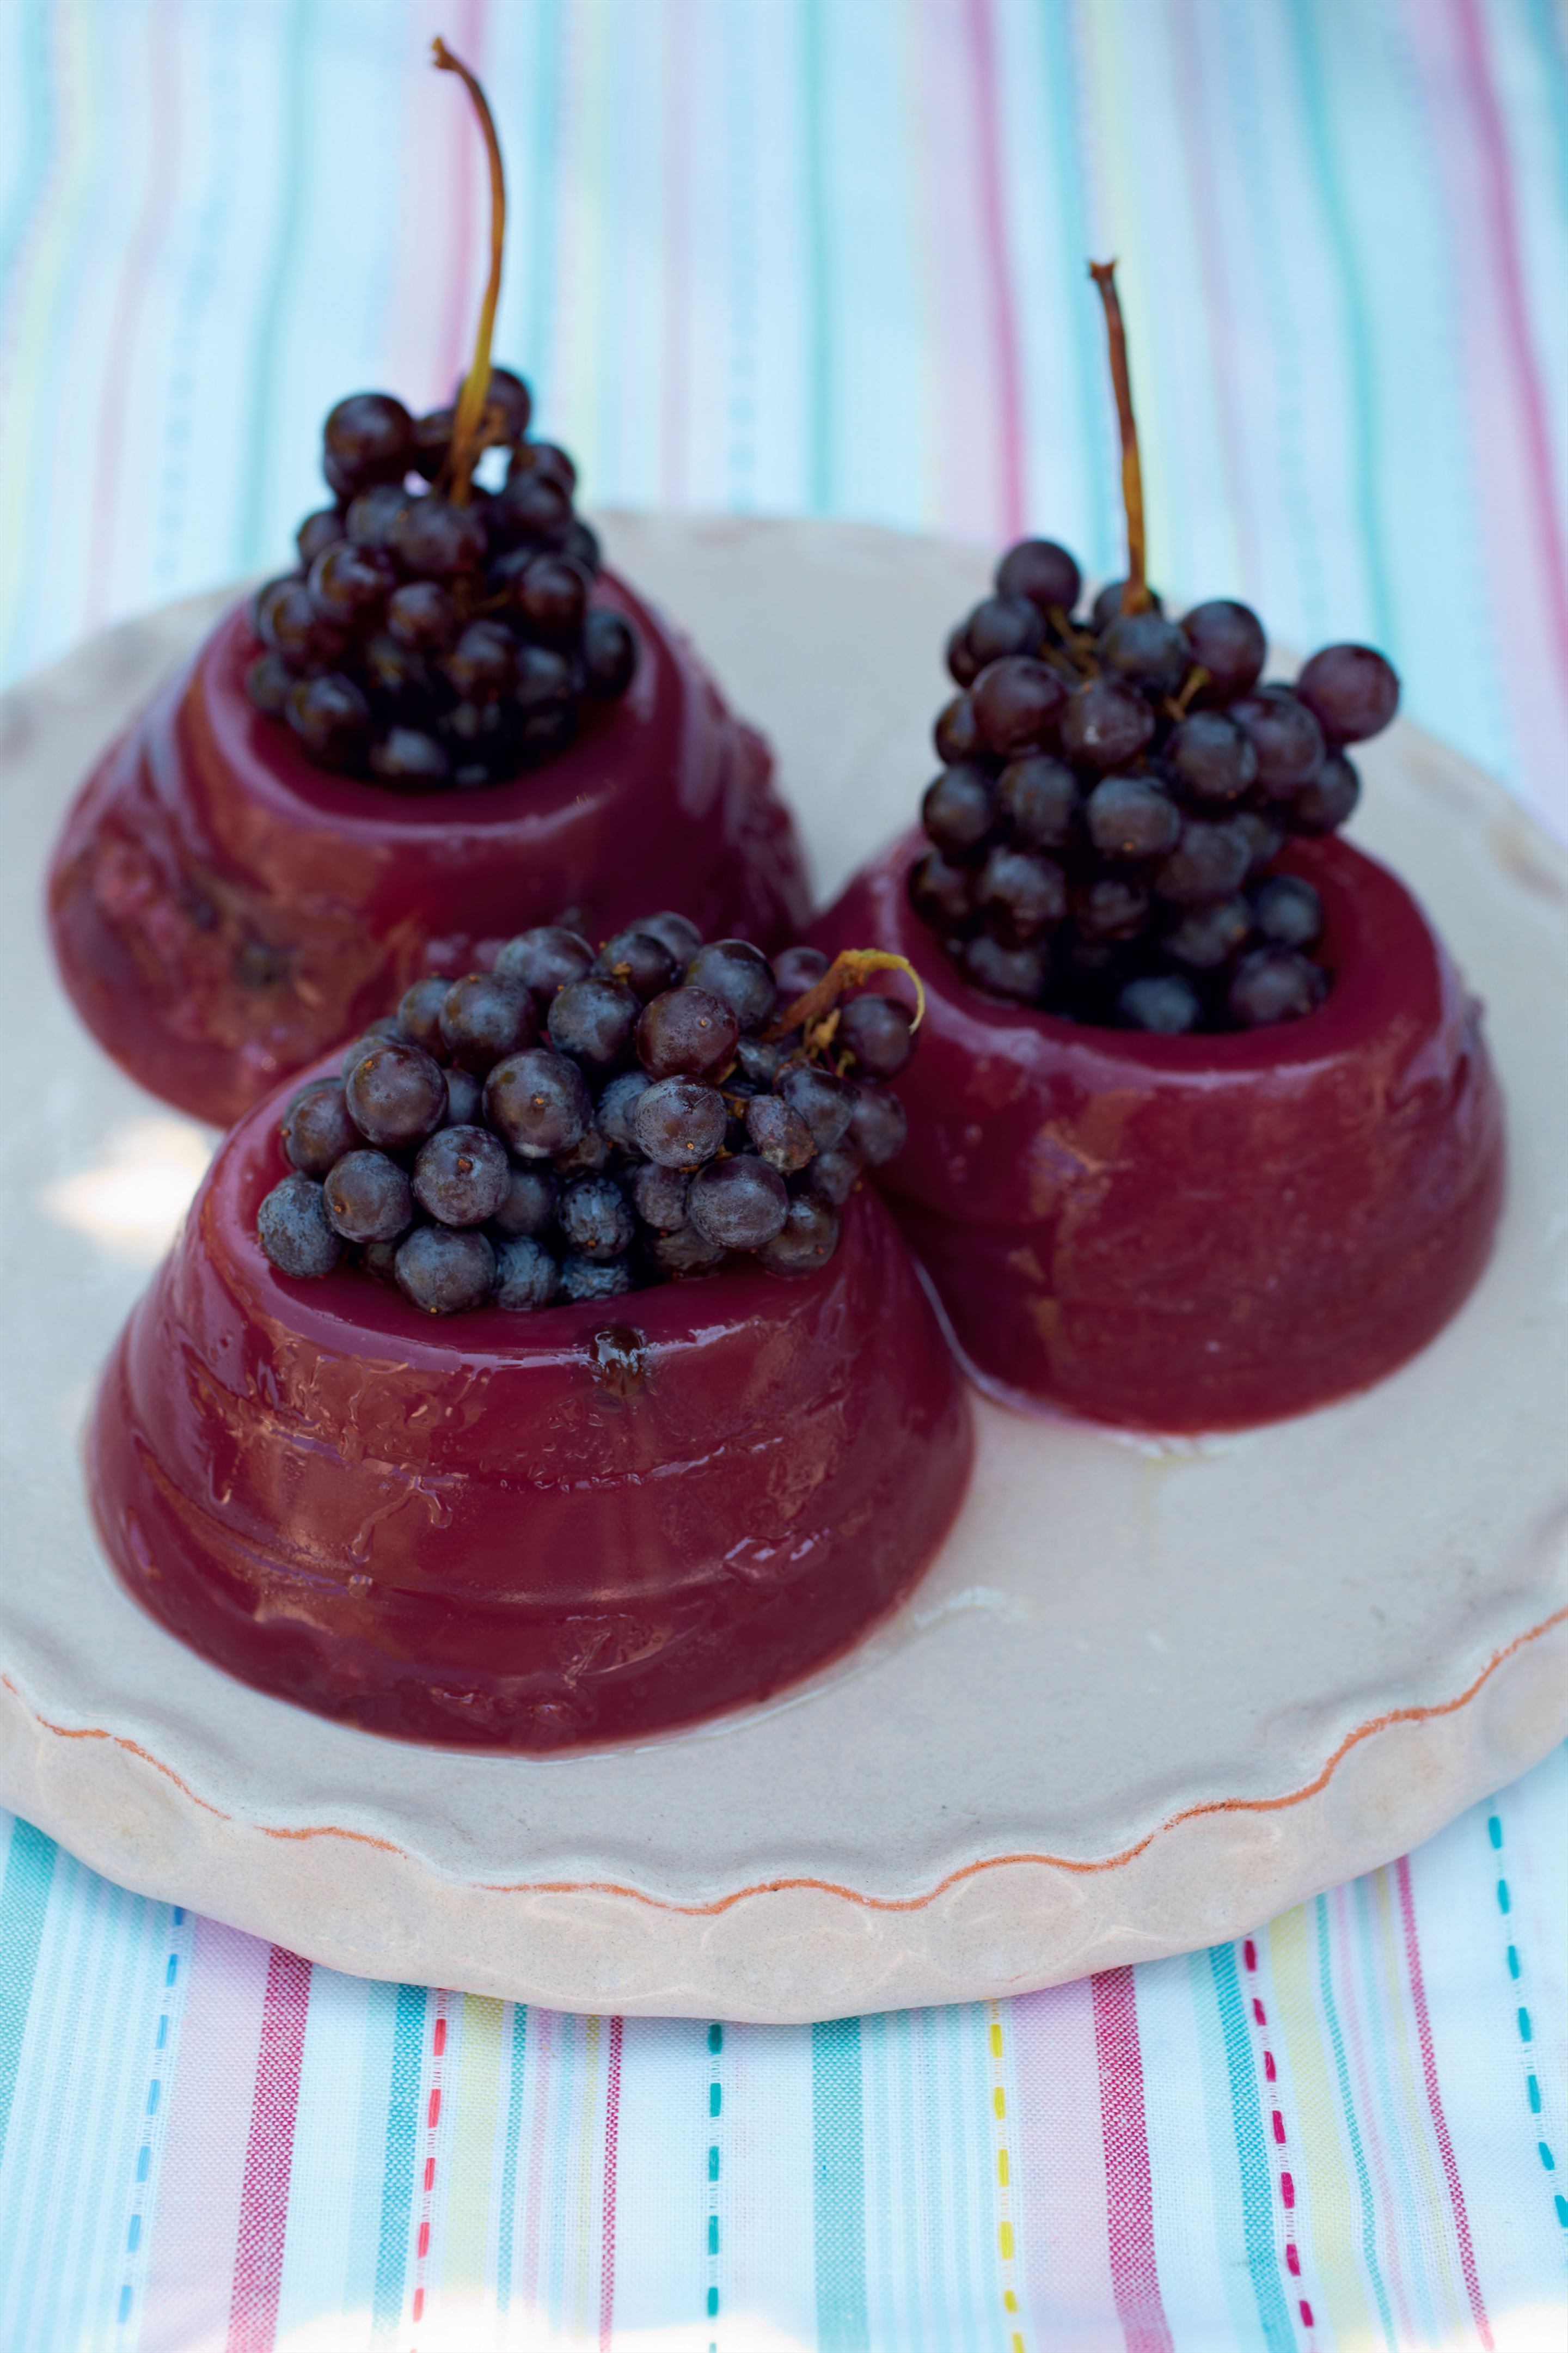 Grape must pudding